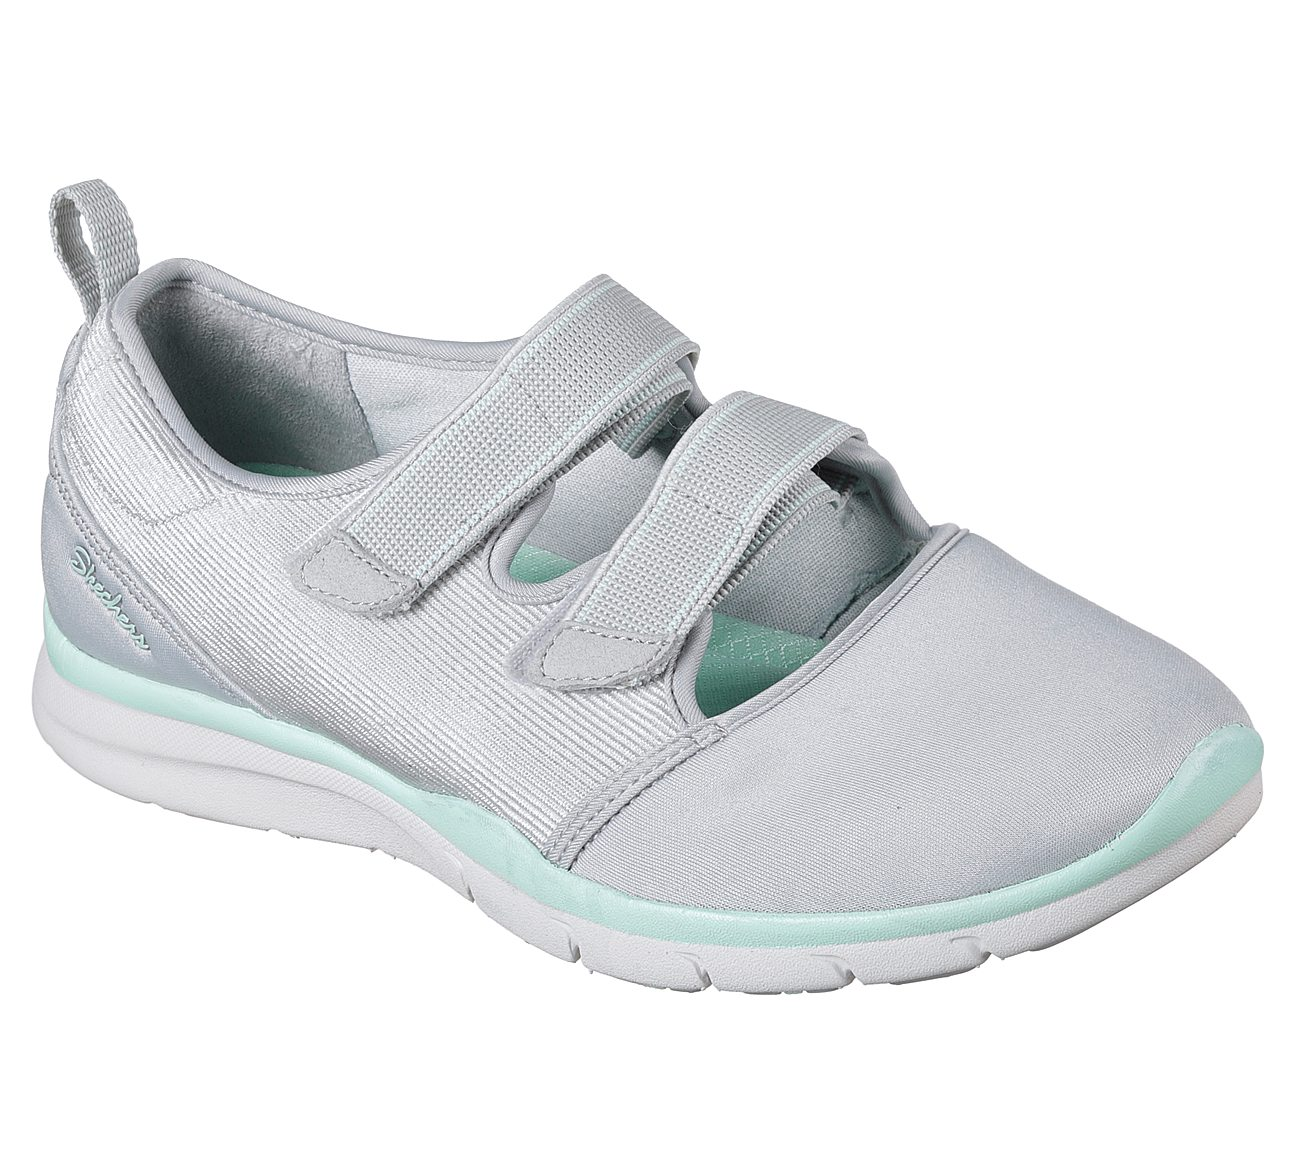 Gratis Cloud - Psyched Up SKECHERS L4zMSBy